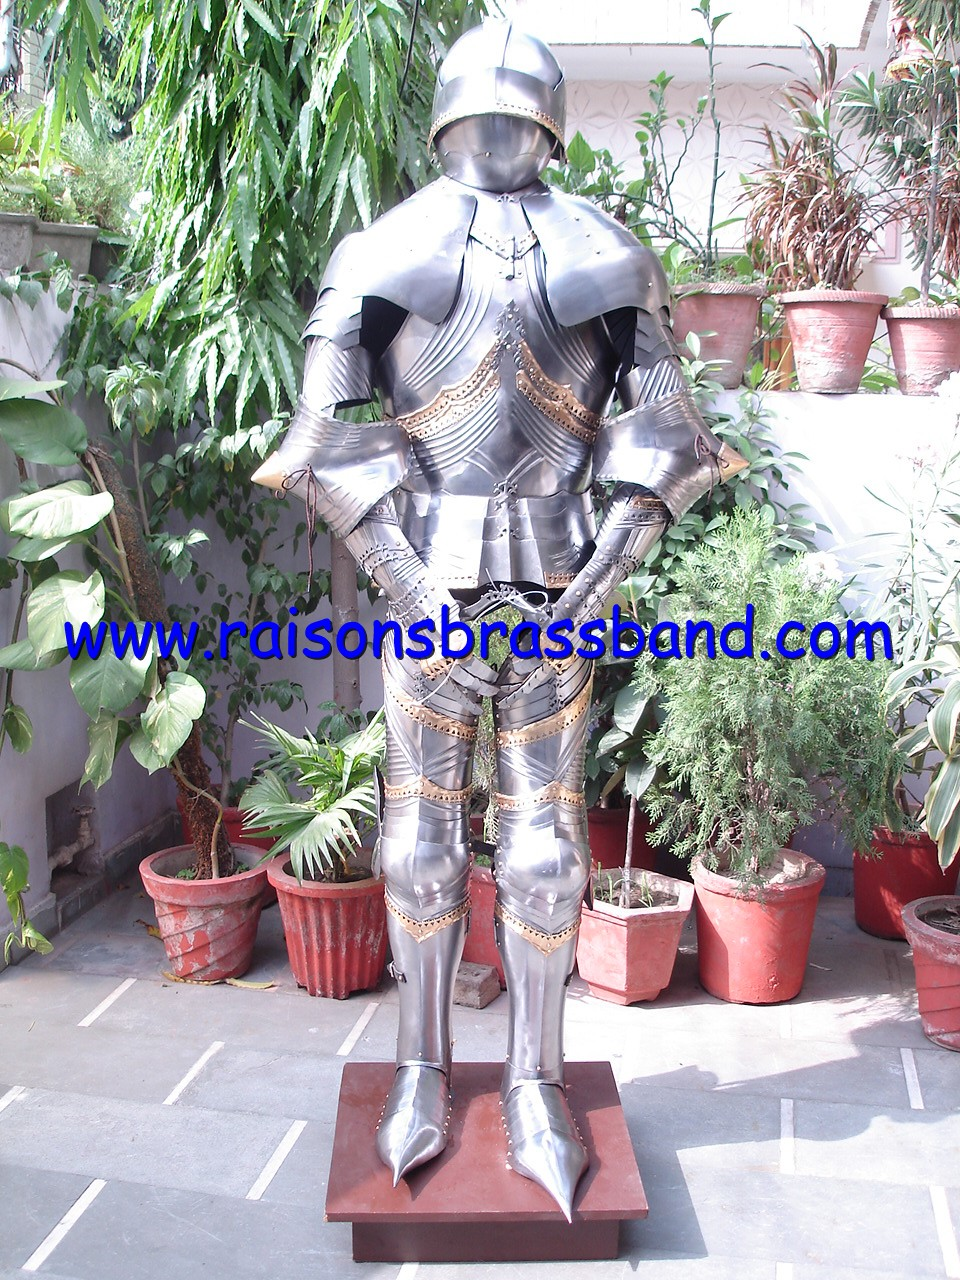 German Gothic Suit of Armor